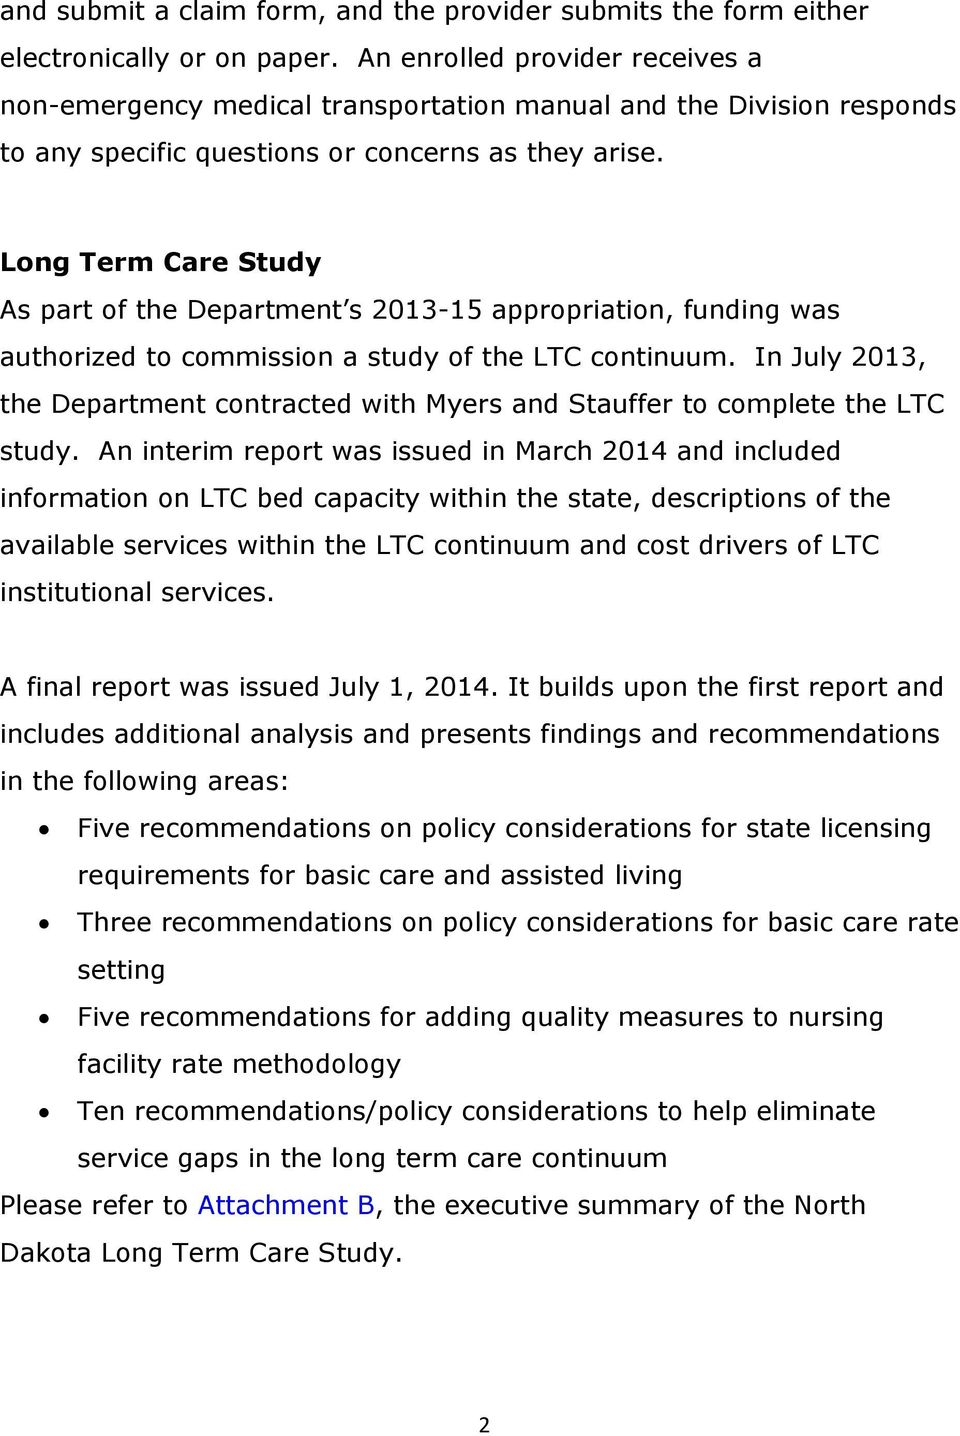 Long Term Care Study As part of the Department s 2013-15 appropriation, funding was authorized to commission a study of the LTC continuum.